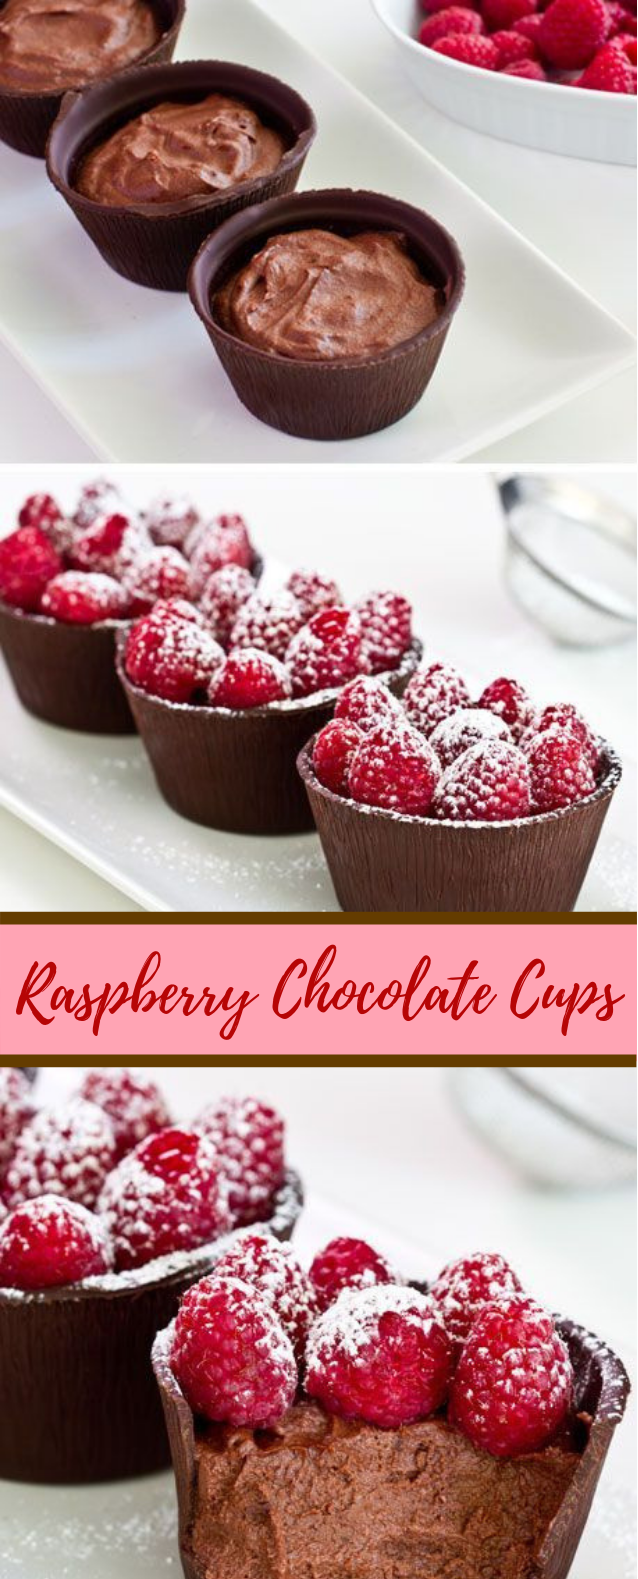 Raspberry Chocolate Cups #Chocolate #Dessert